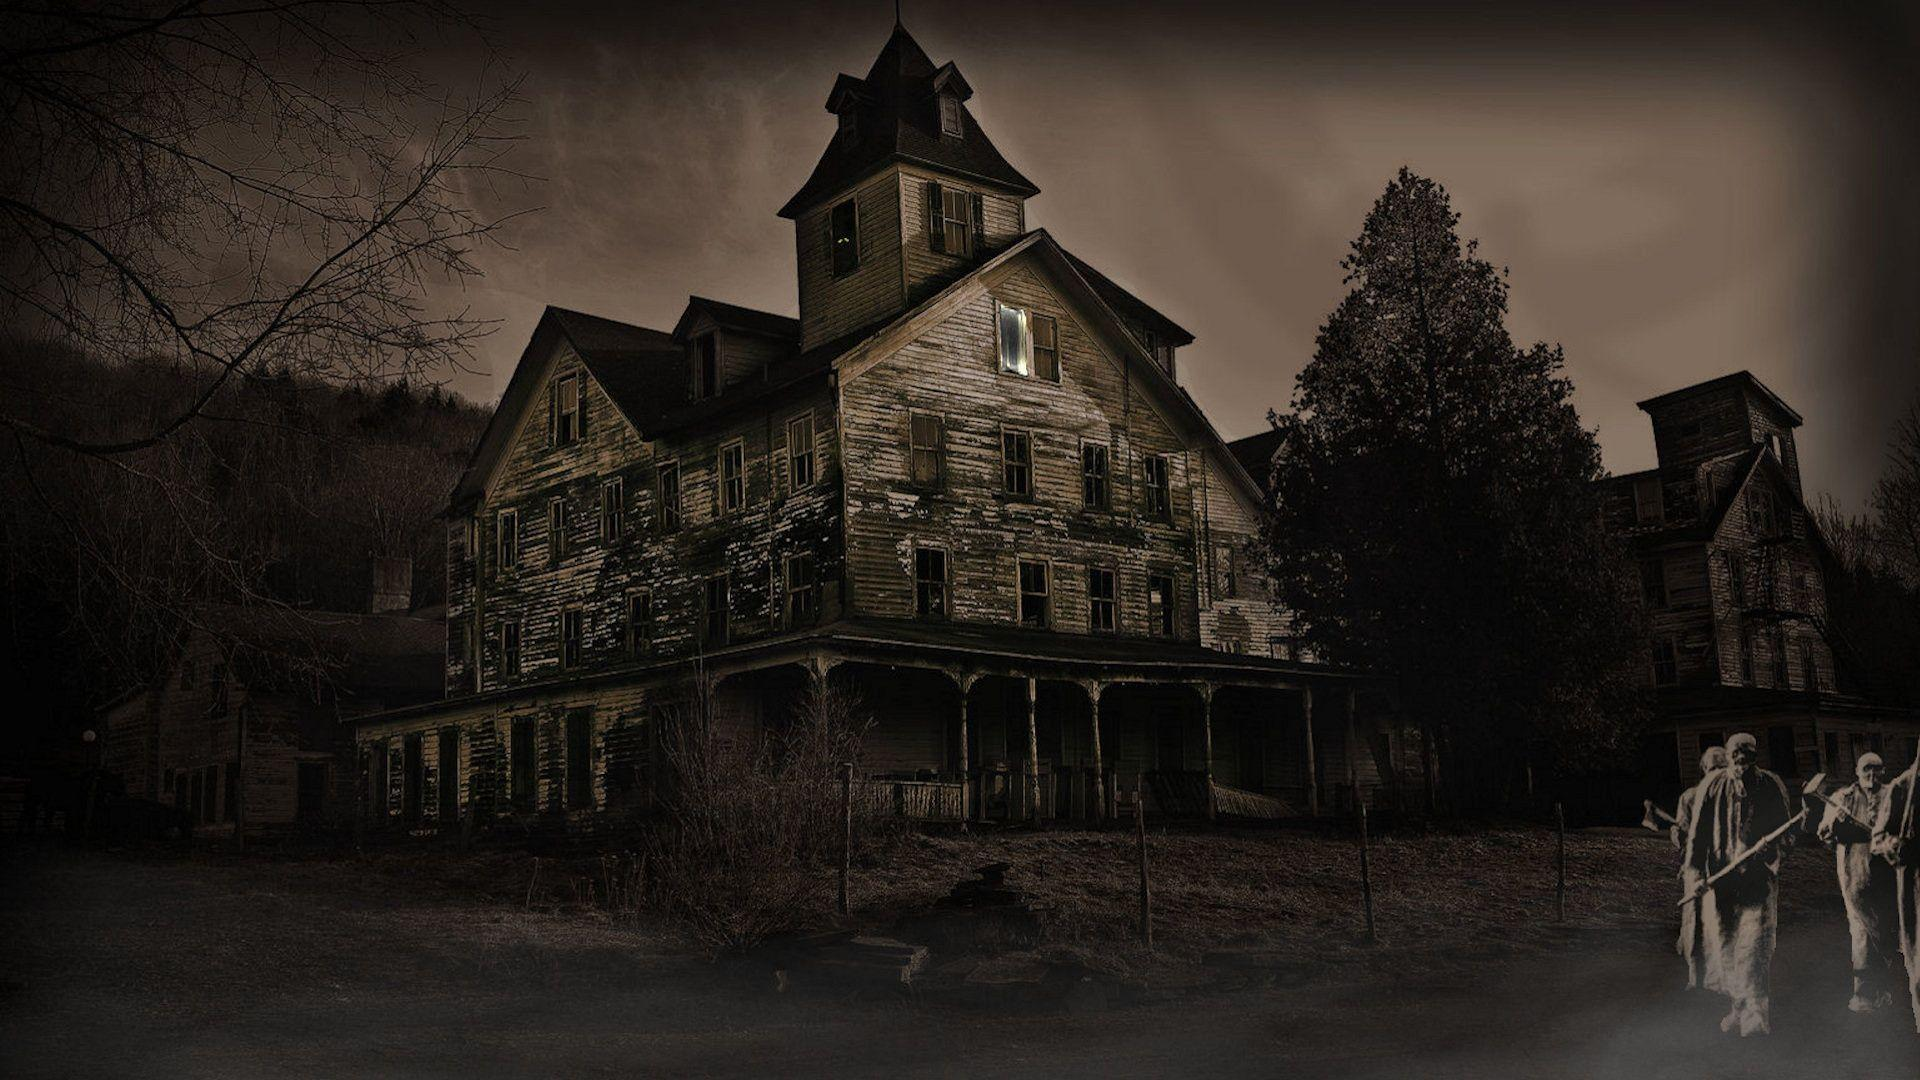 Haunted house wallpapers desktop wallpaper cave for Best house wallpaper